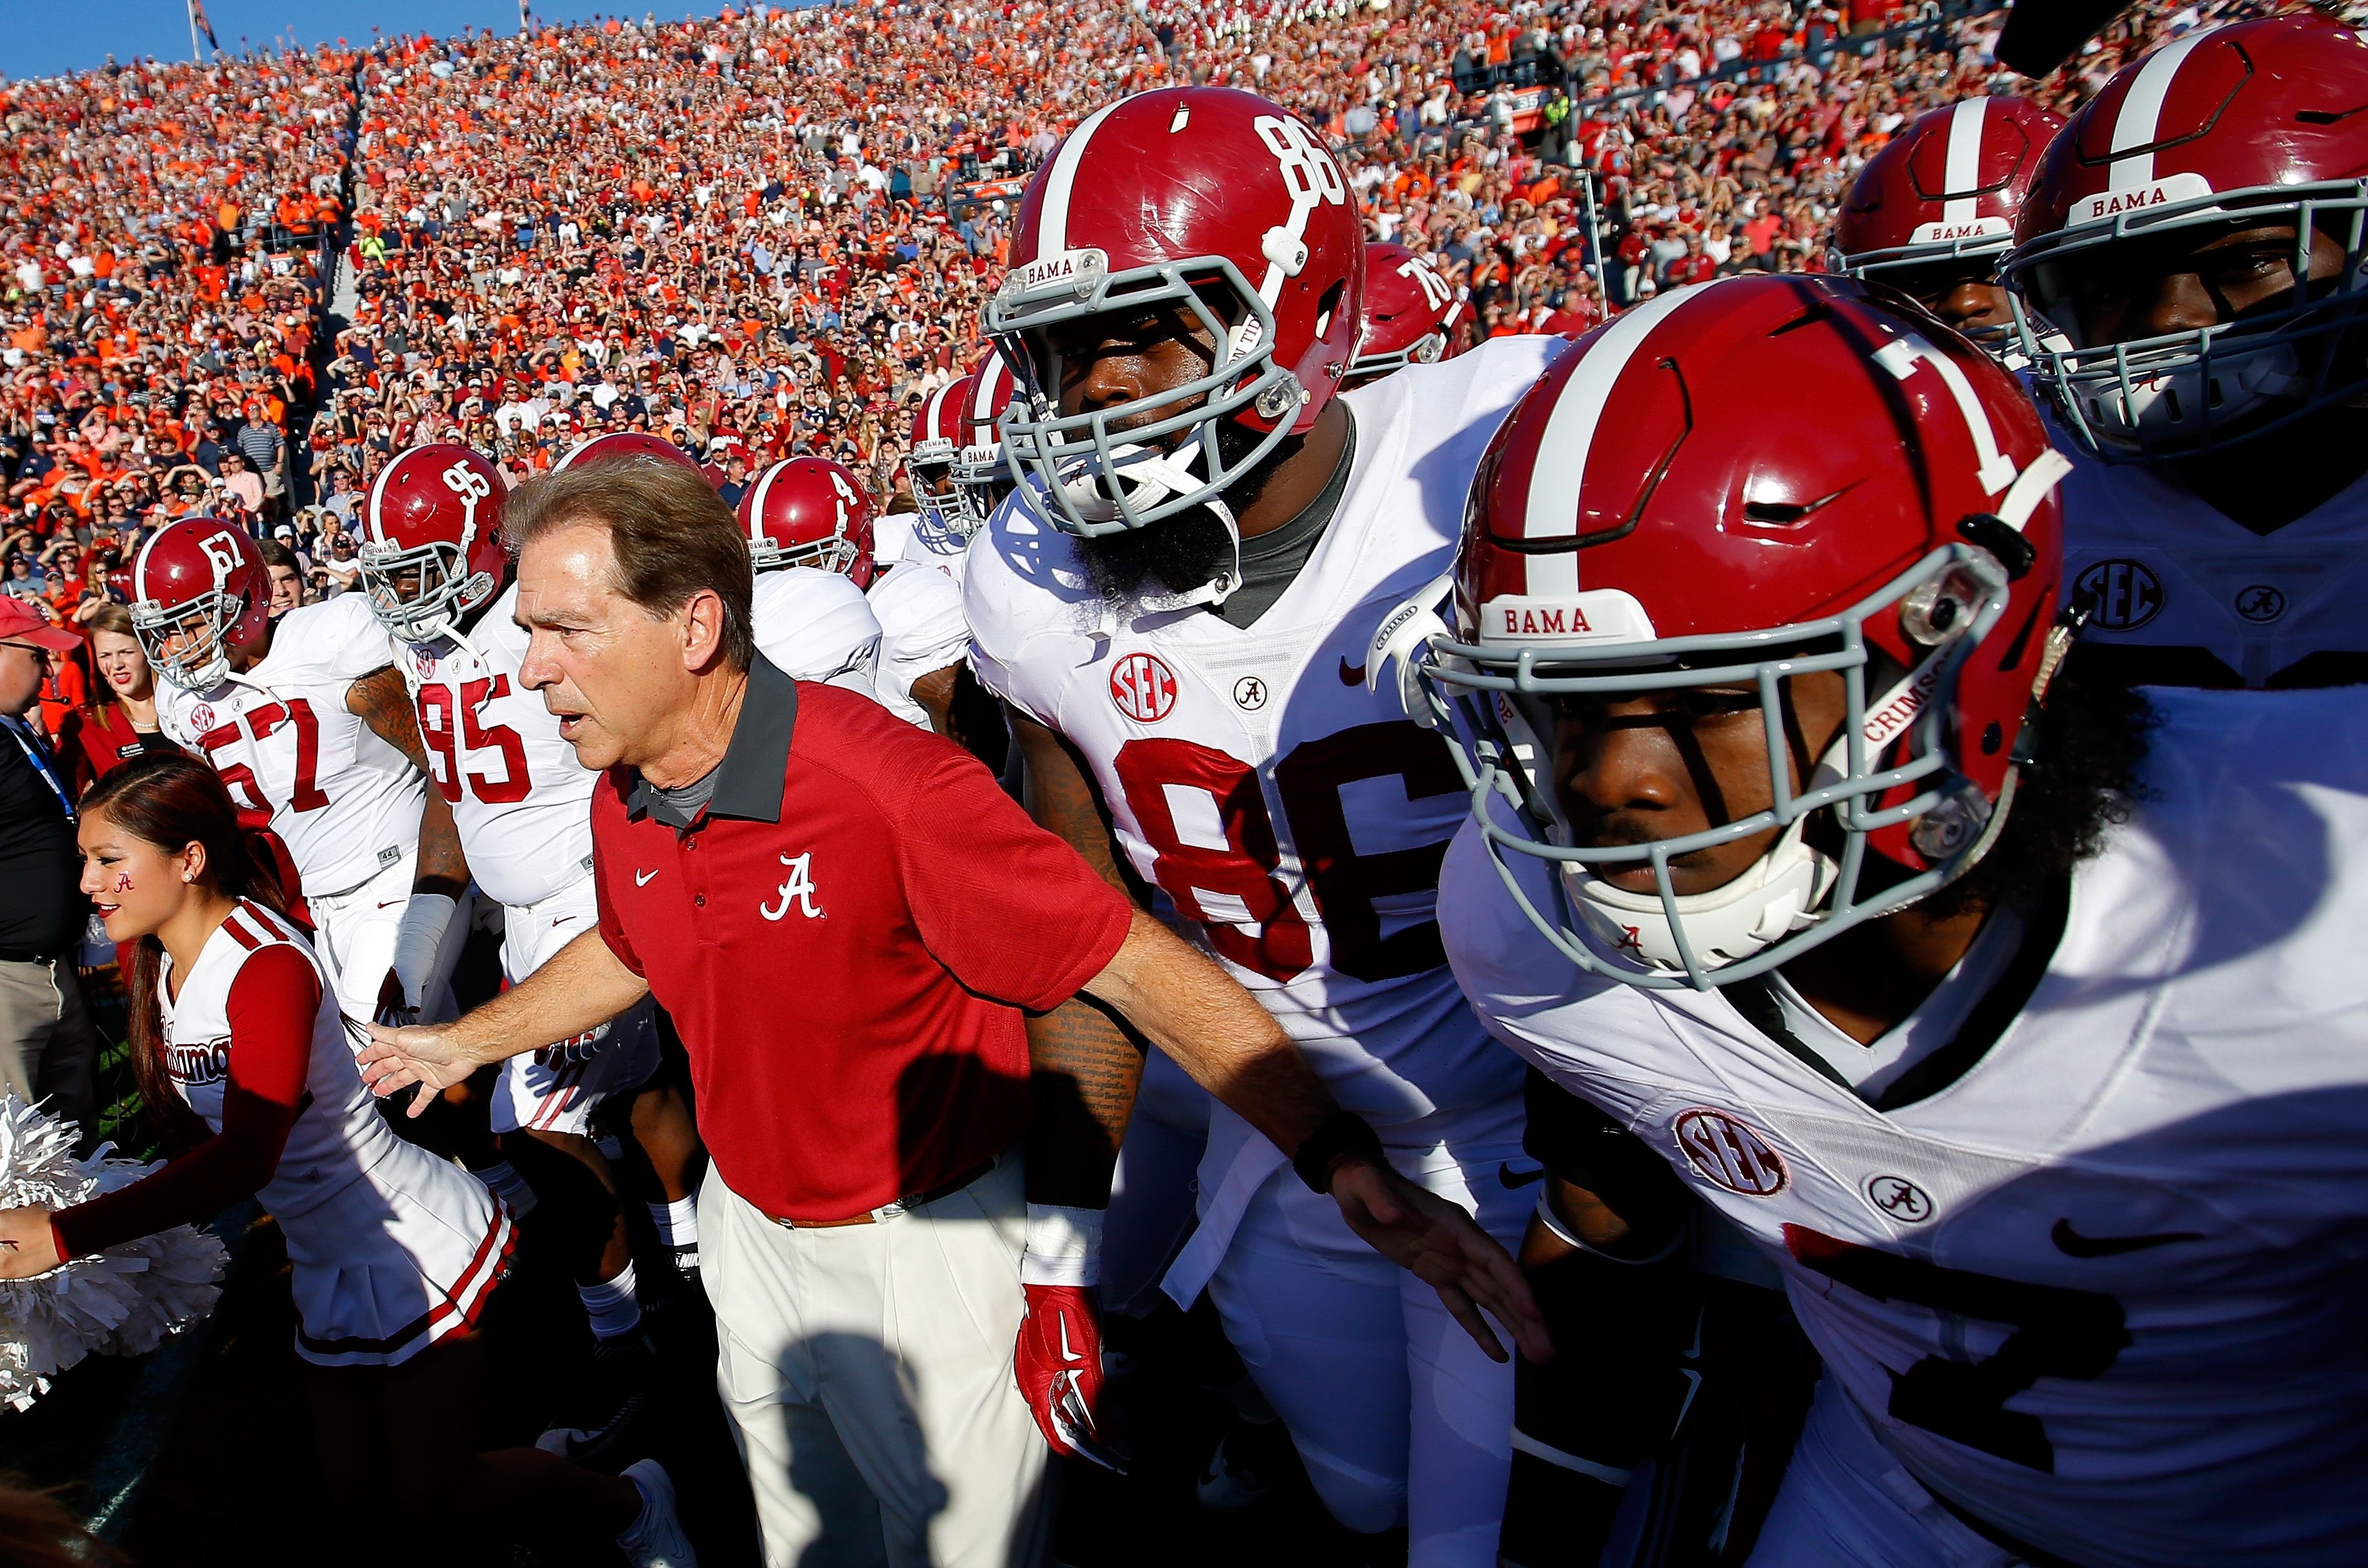 Spain have been football's dominant force for the past 13 years, but with their superiority on the wane, they need to return to their roots. Alabama Football hits the books like they hit their enemies